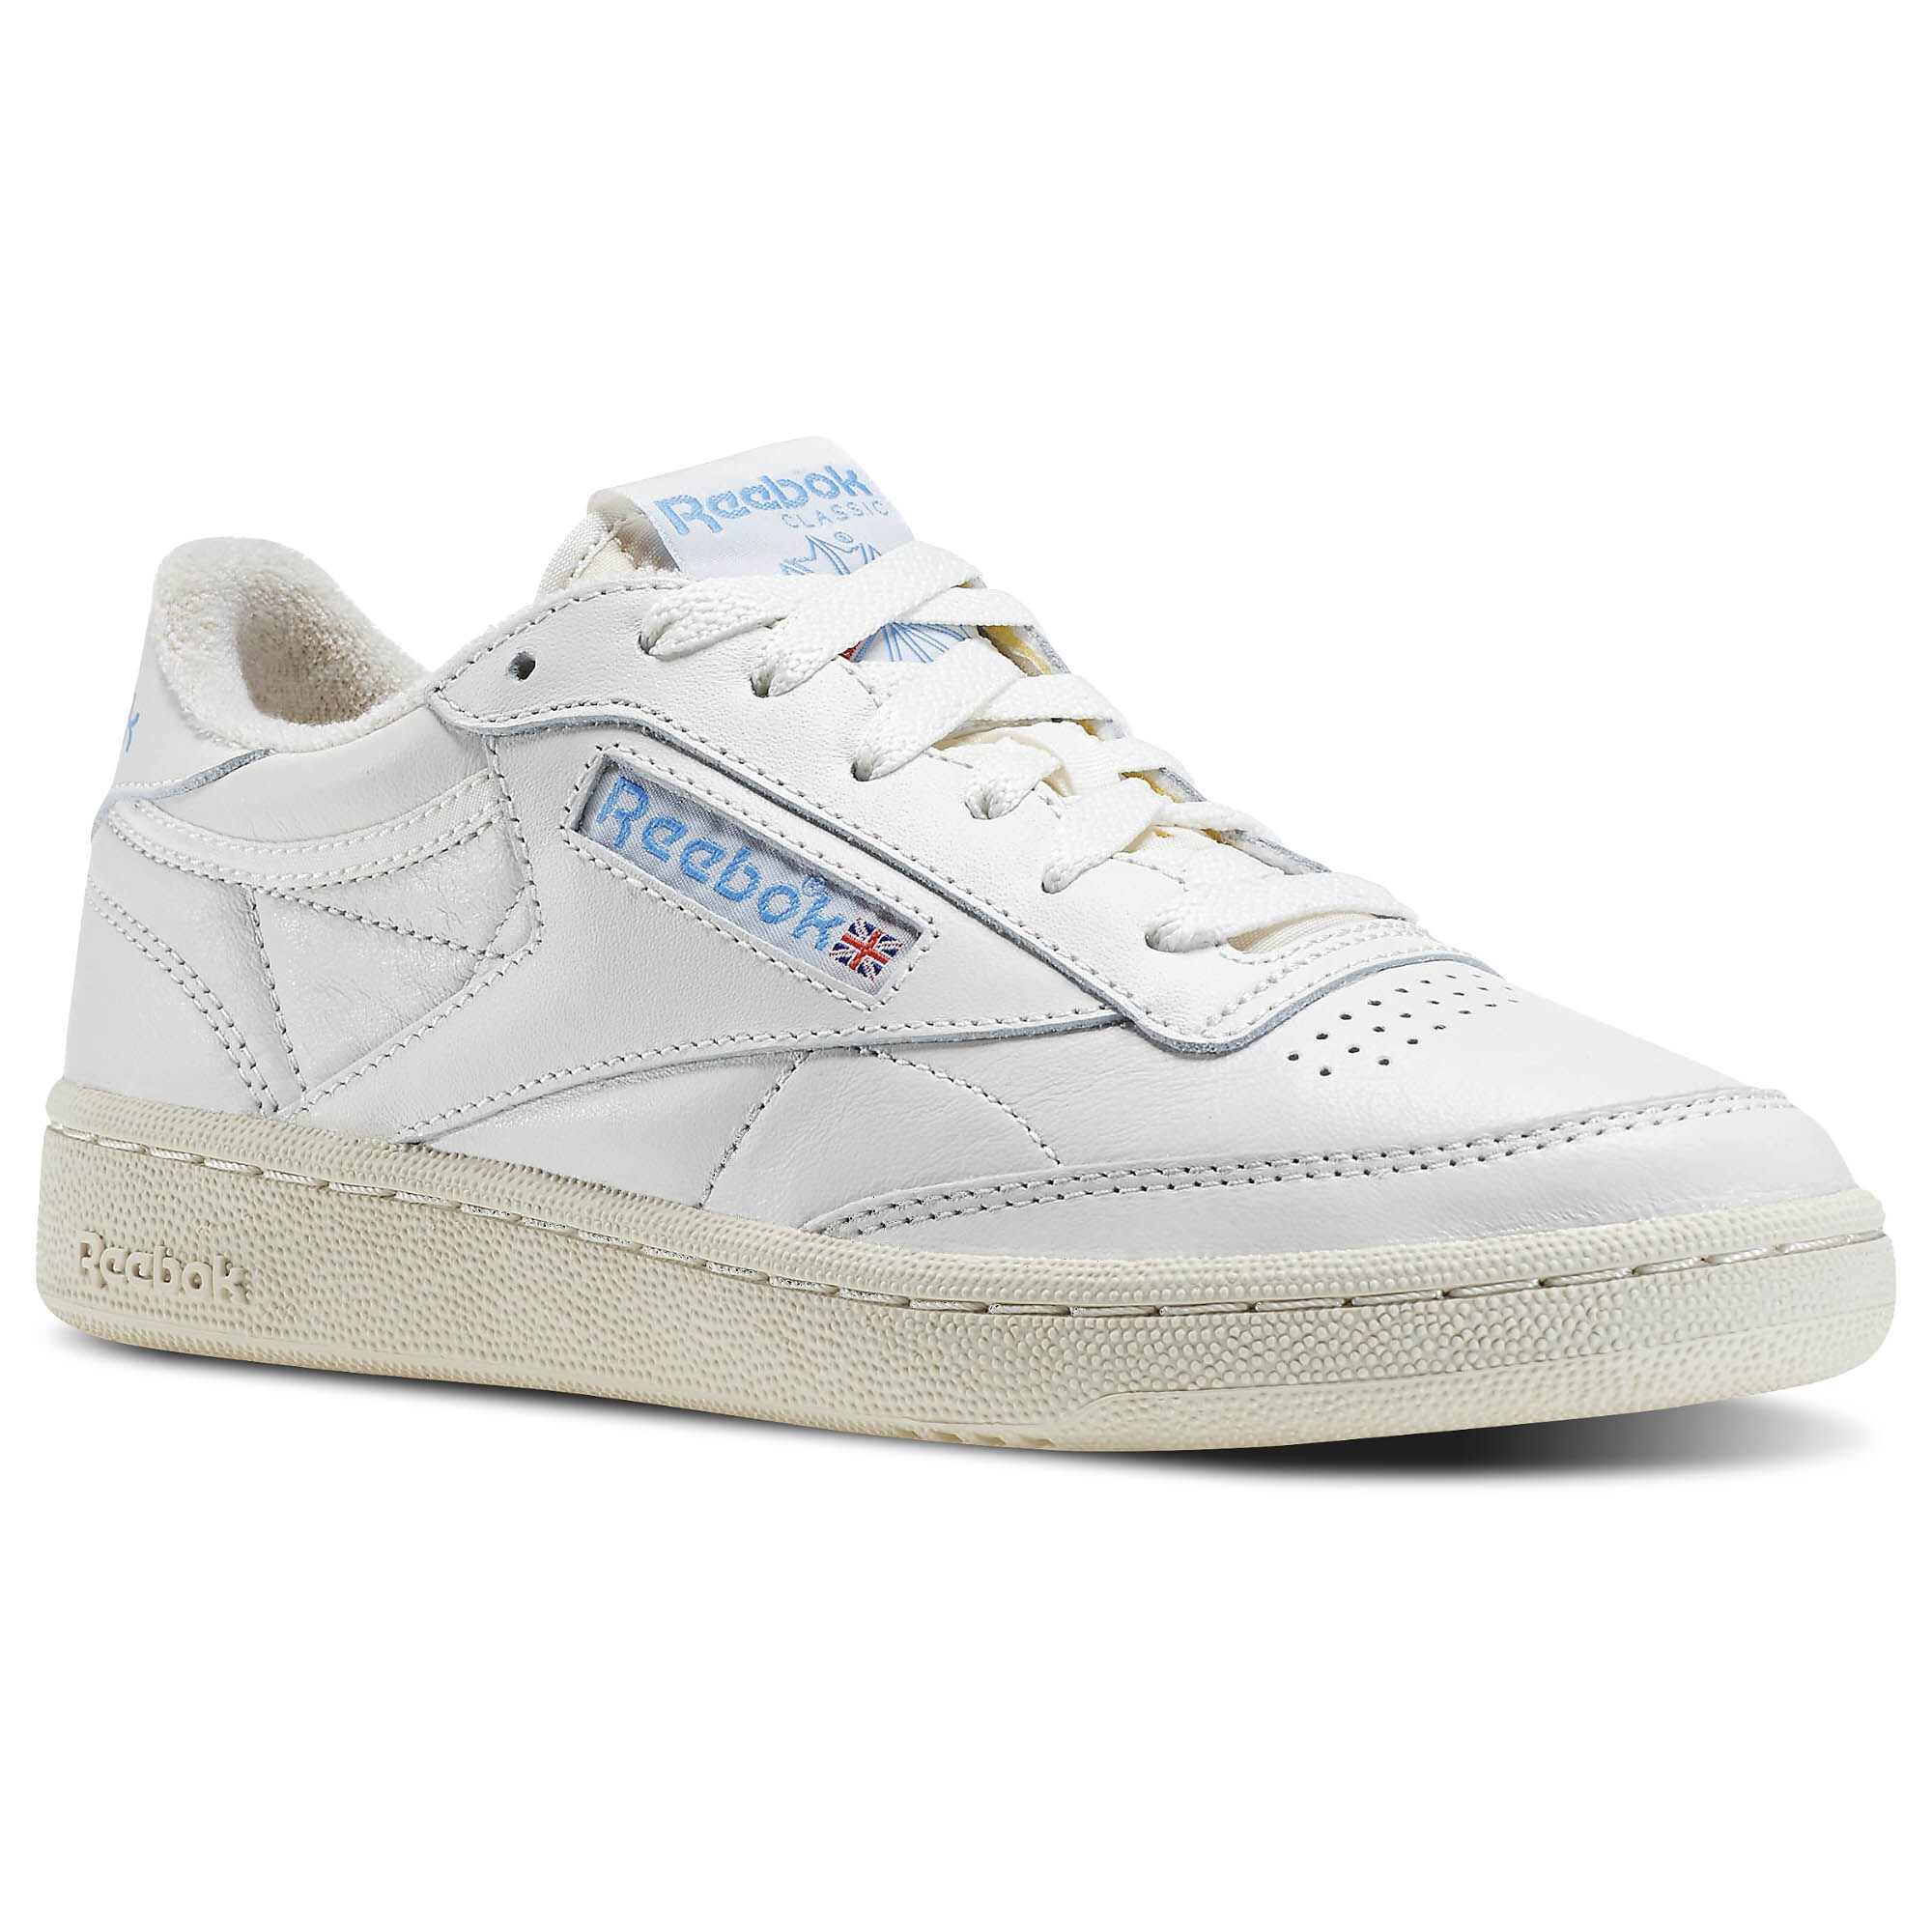 09c68b1ac85a9 Buy reebok classic court shoes   OFF50% Discounted